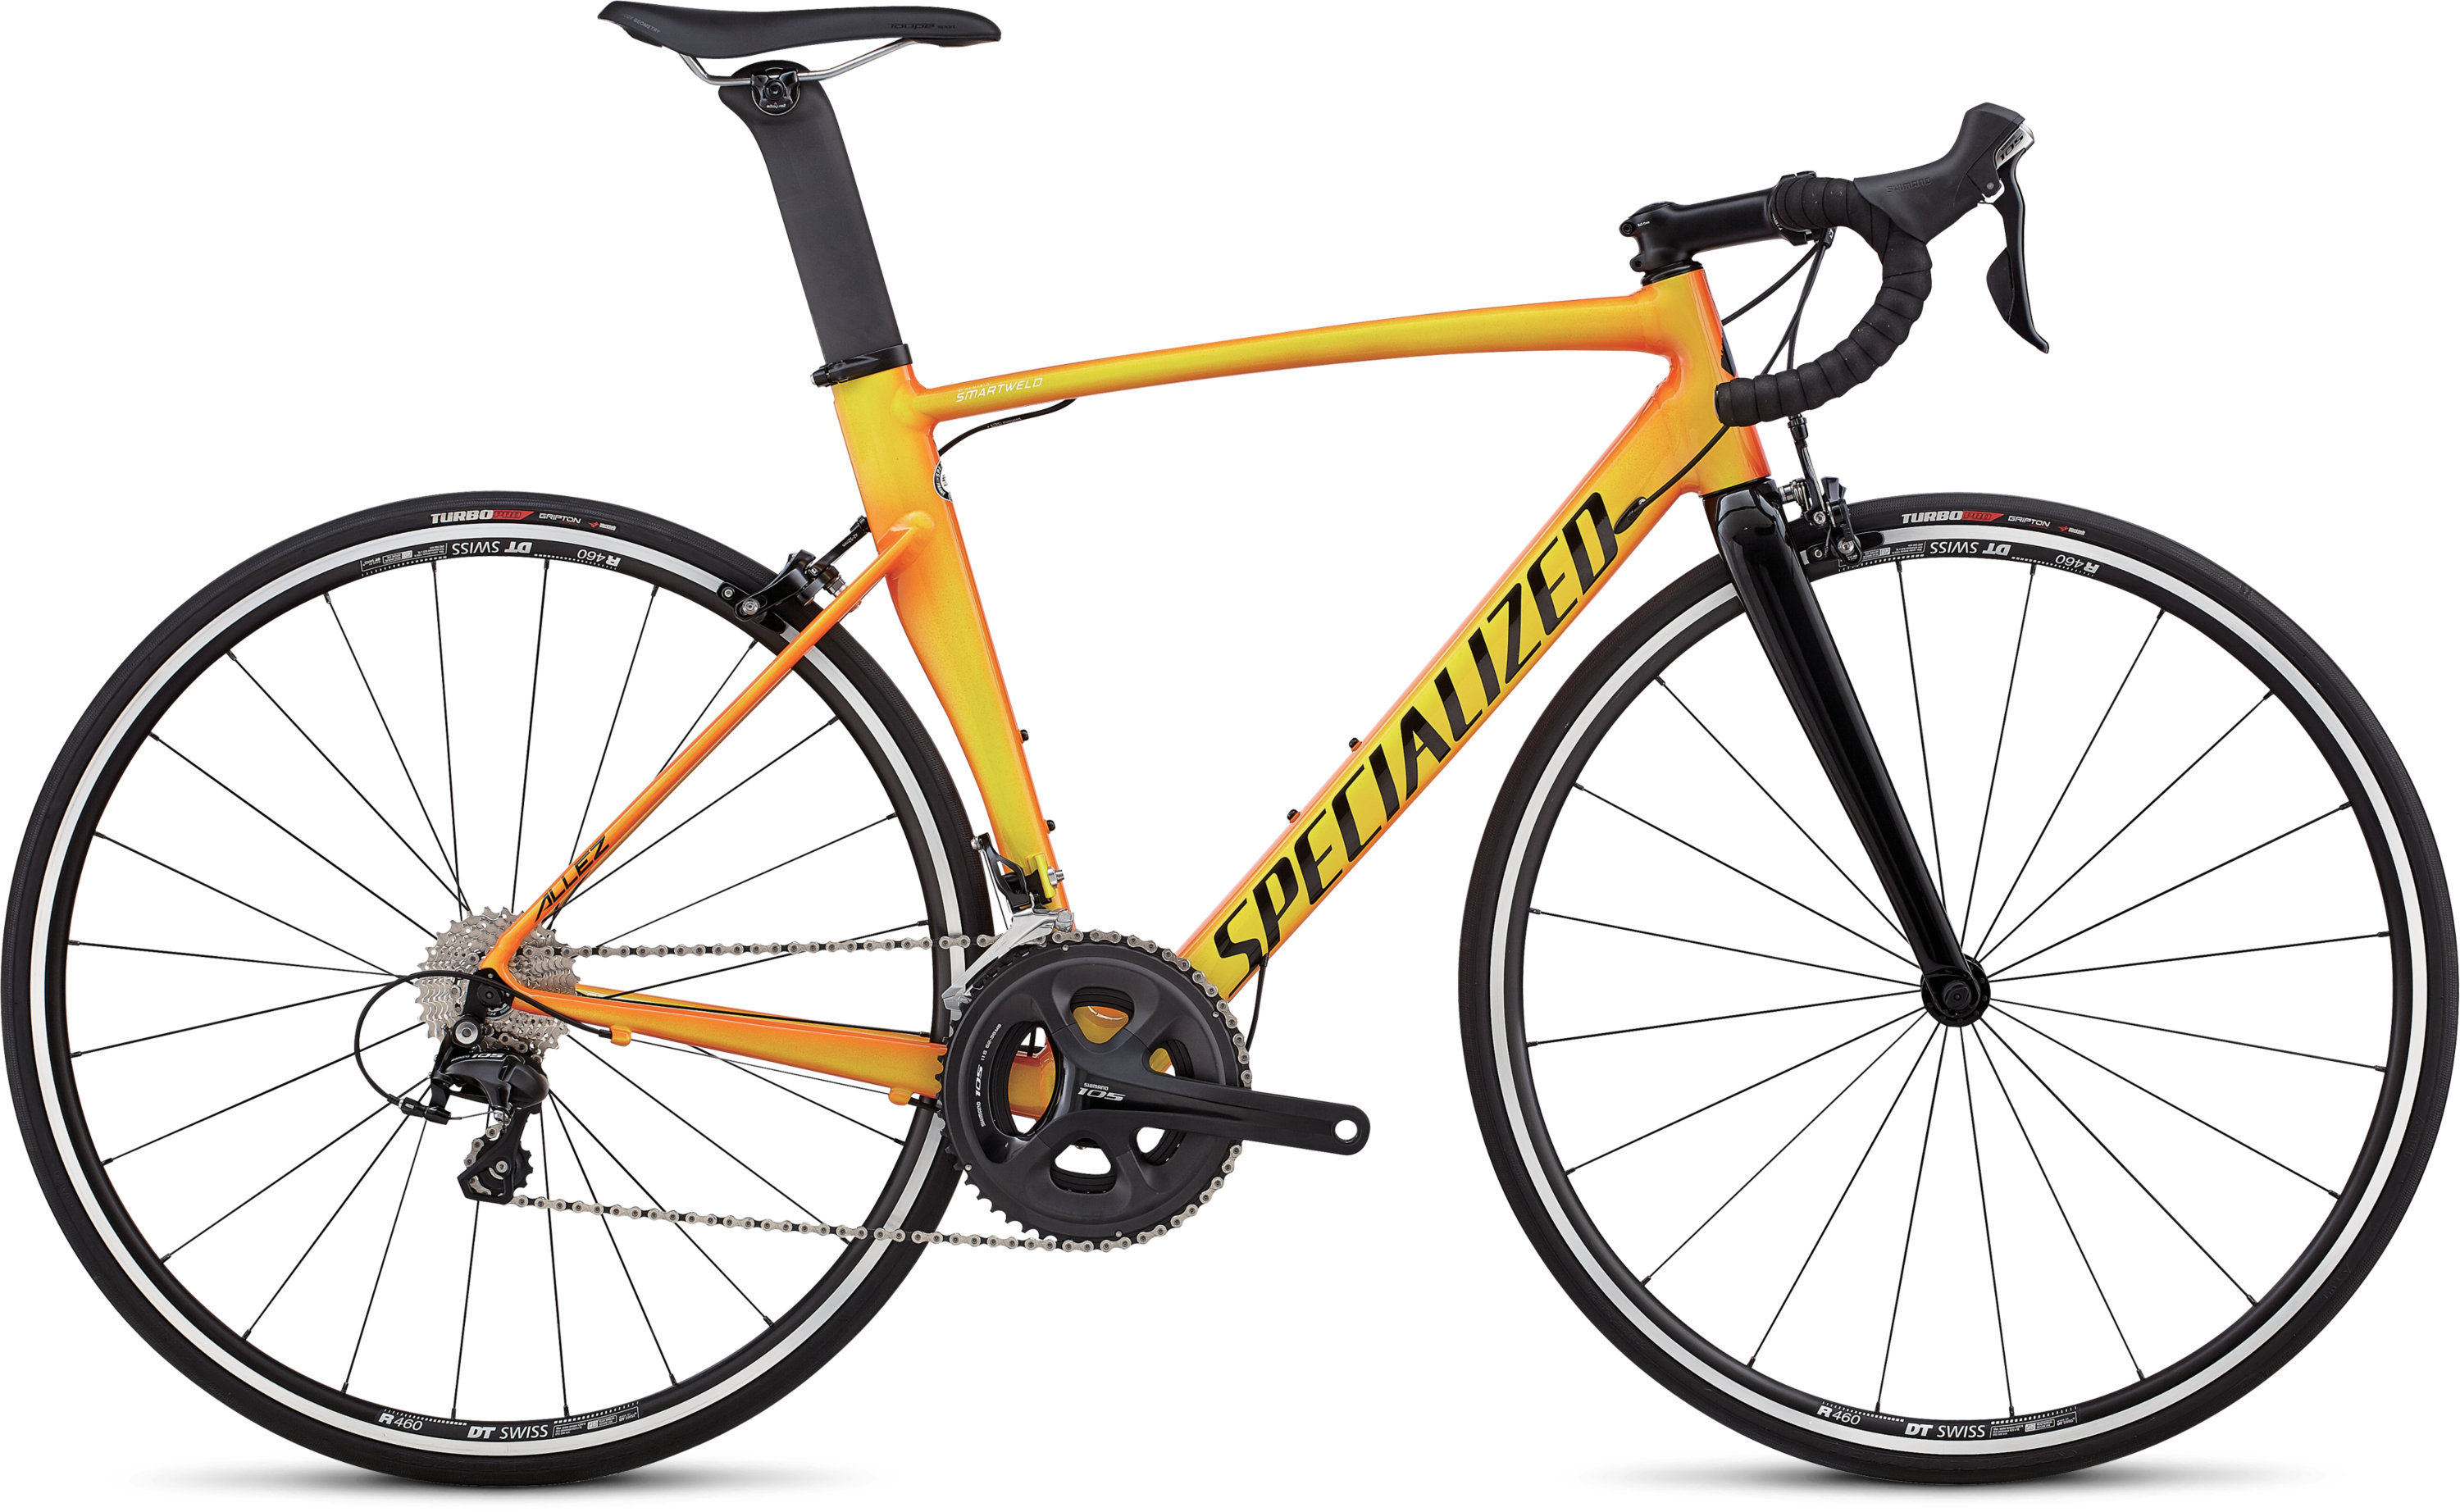 Cuadros Specialized Allez Sprint Comp Specialized